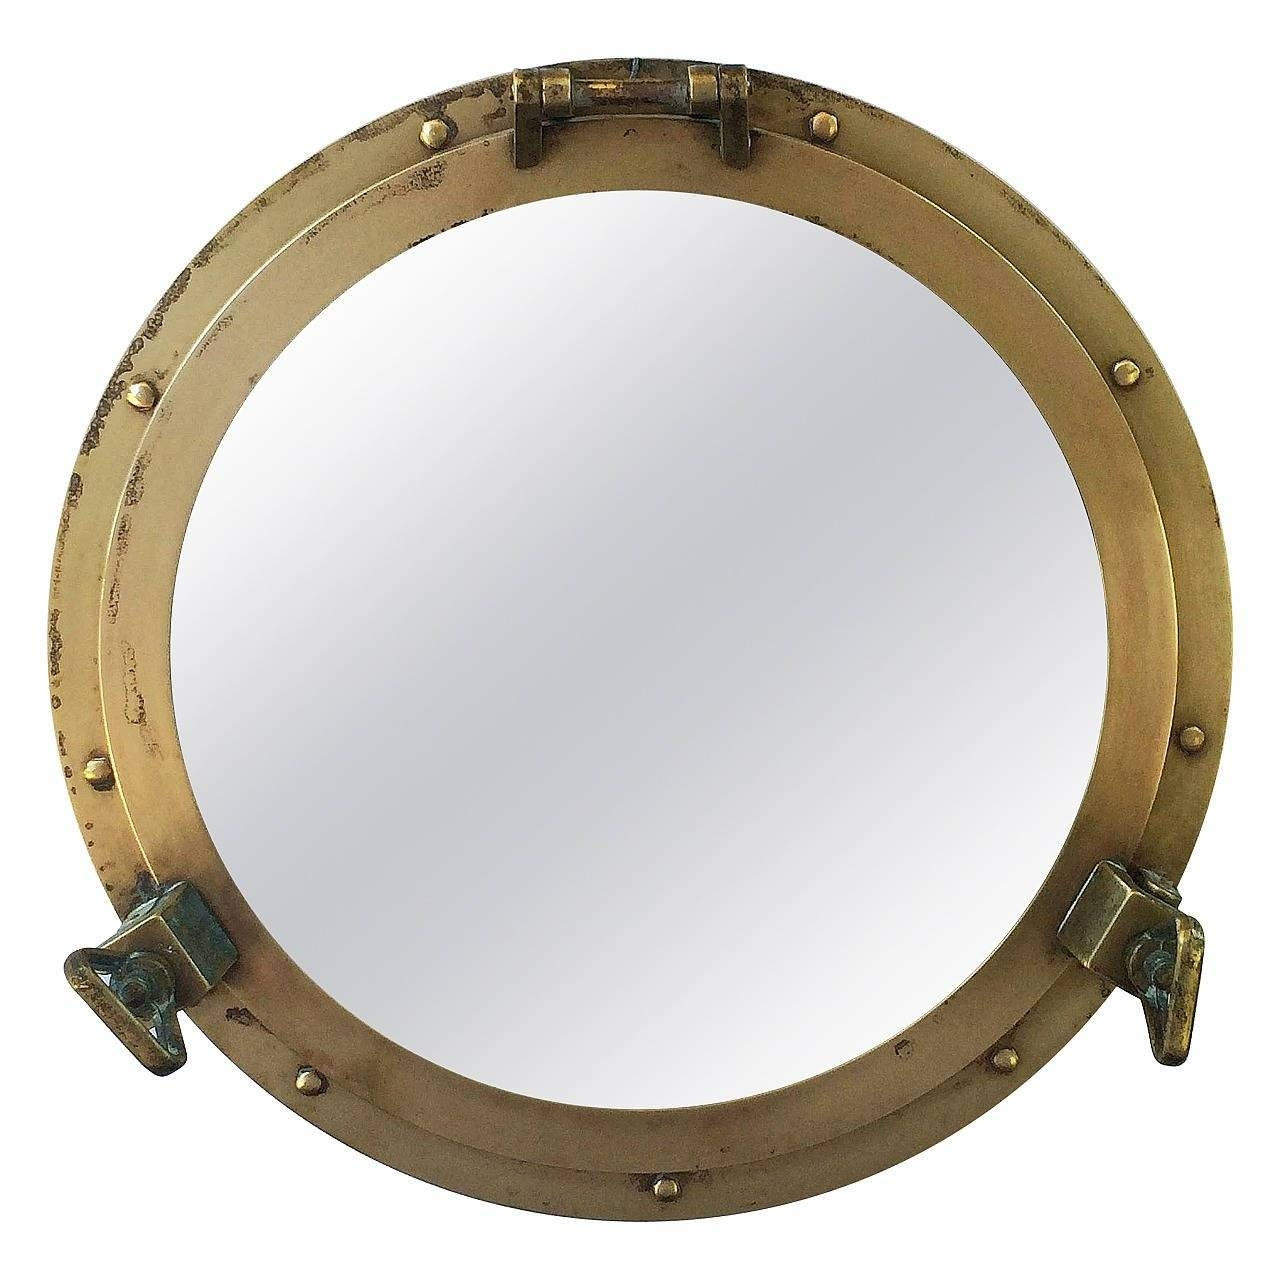 """French Ship's Porthole Mirrors Of Brass (18 1/2"""" Diameter) At 1Stdibs With Regard To French Oval Mirrors (View 9 of 15)"""